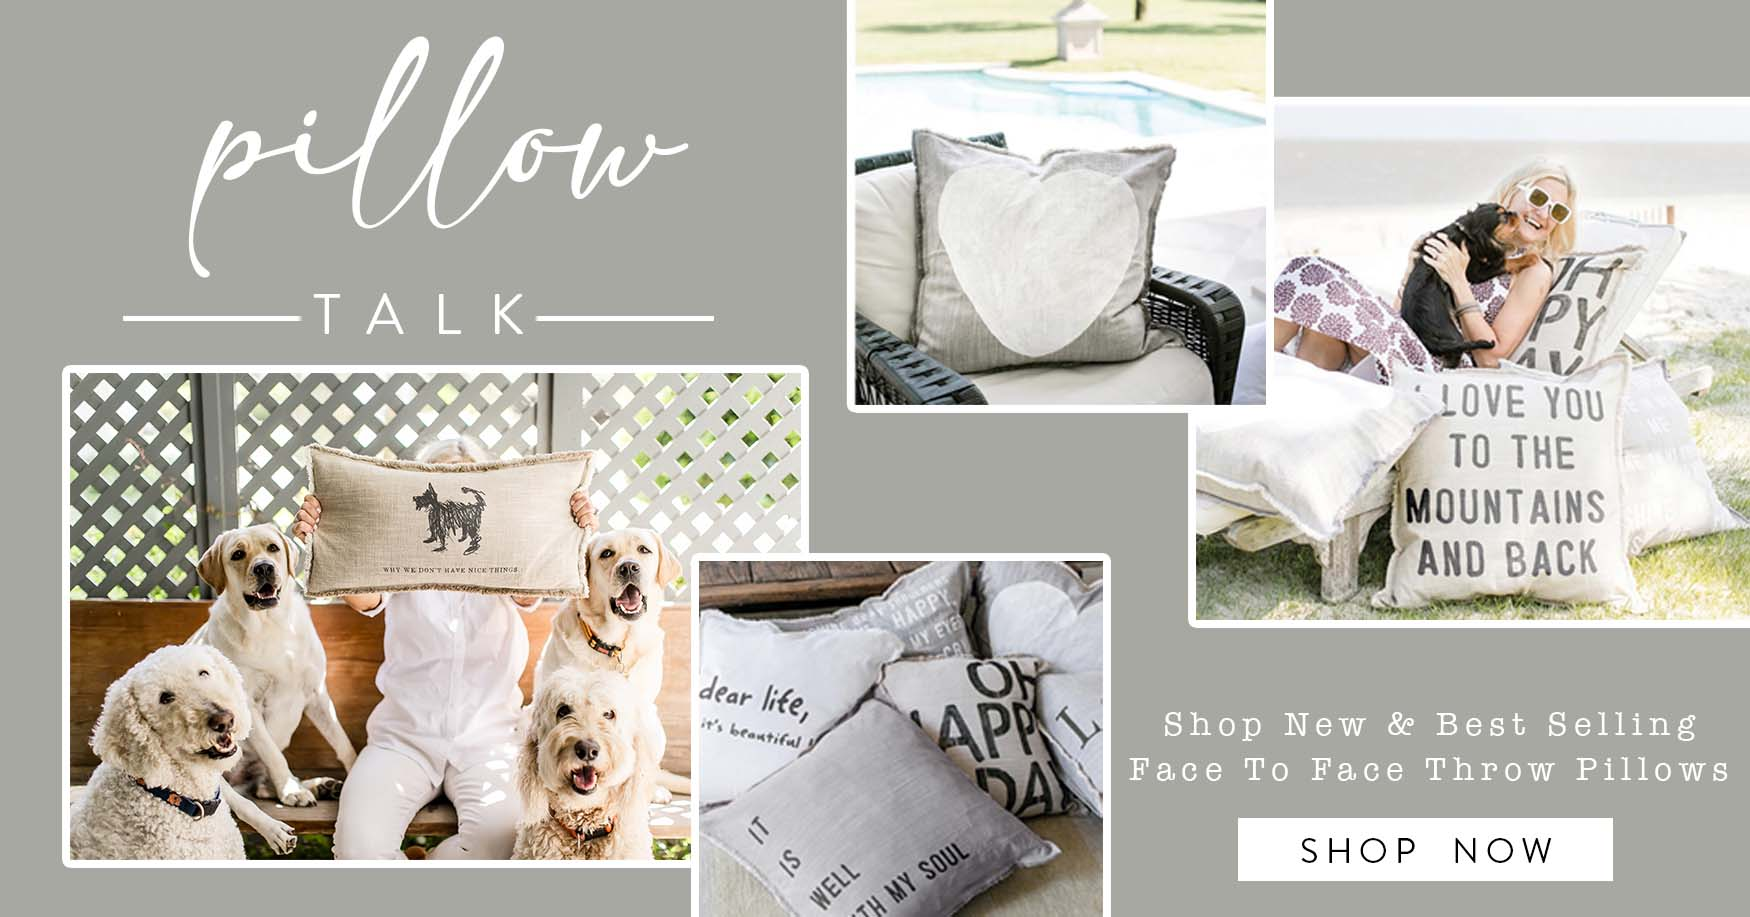 Pillow talk, shop new and best selling face to face throw pillows - shop now!